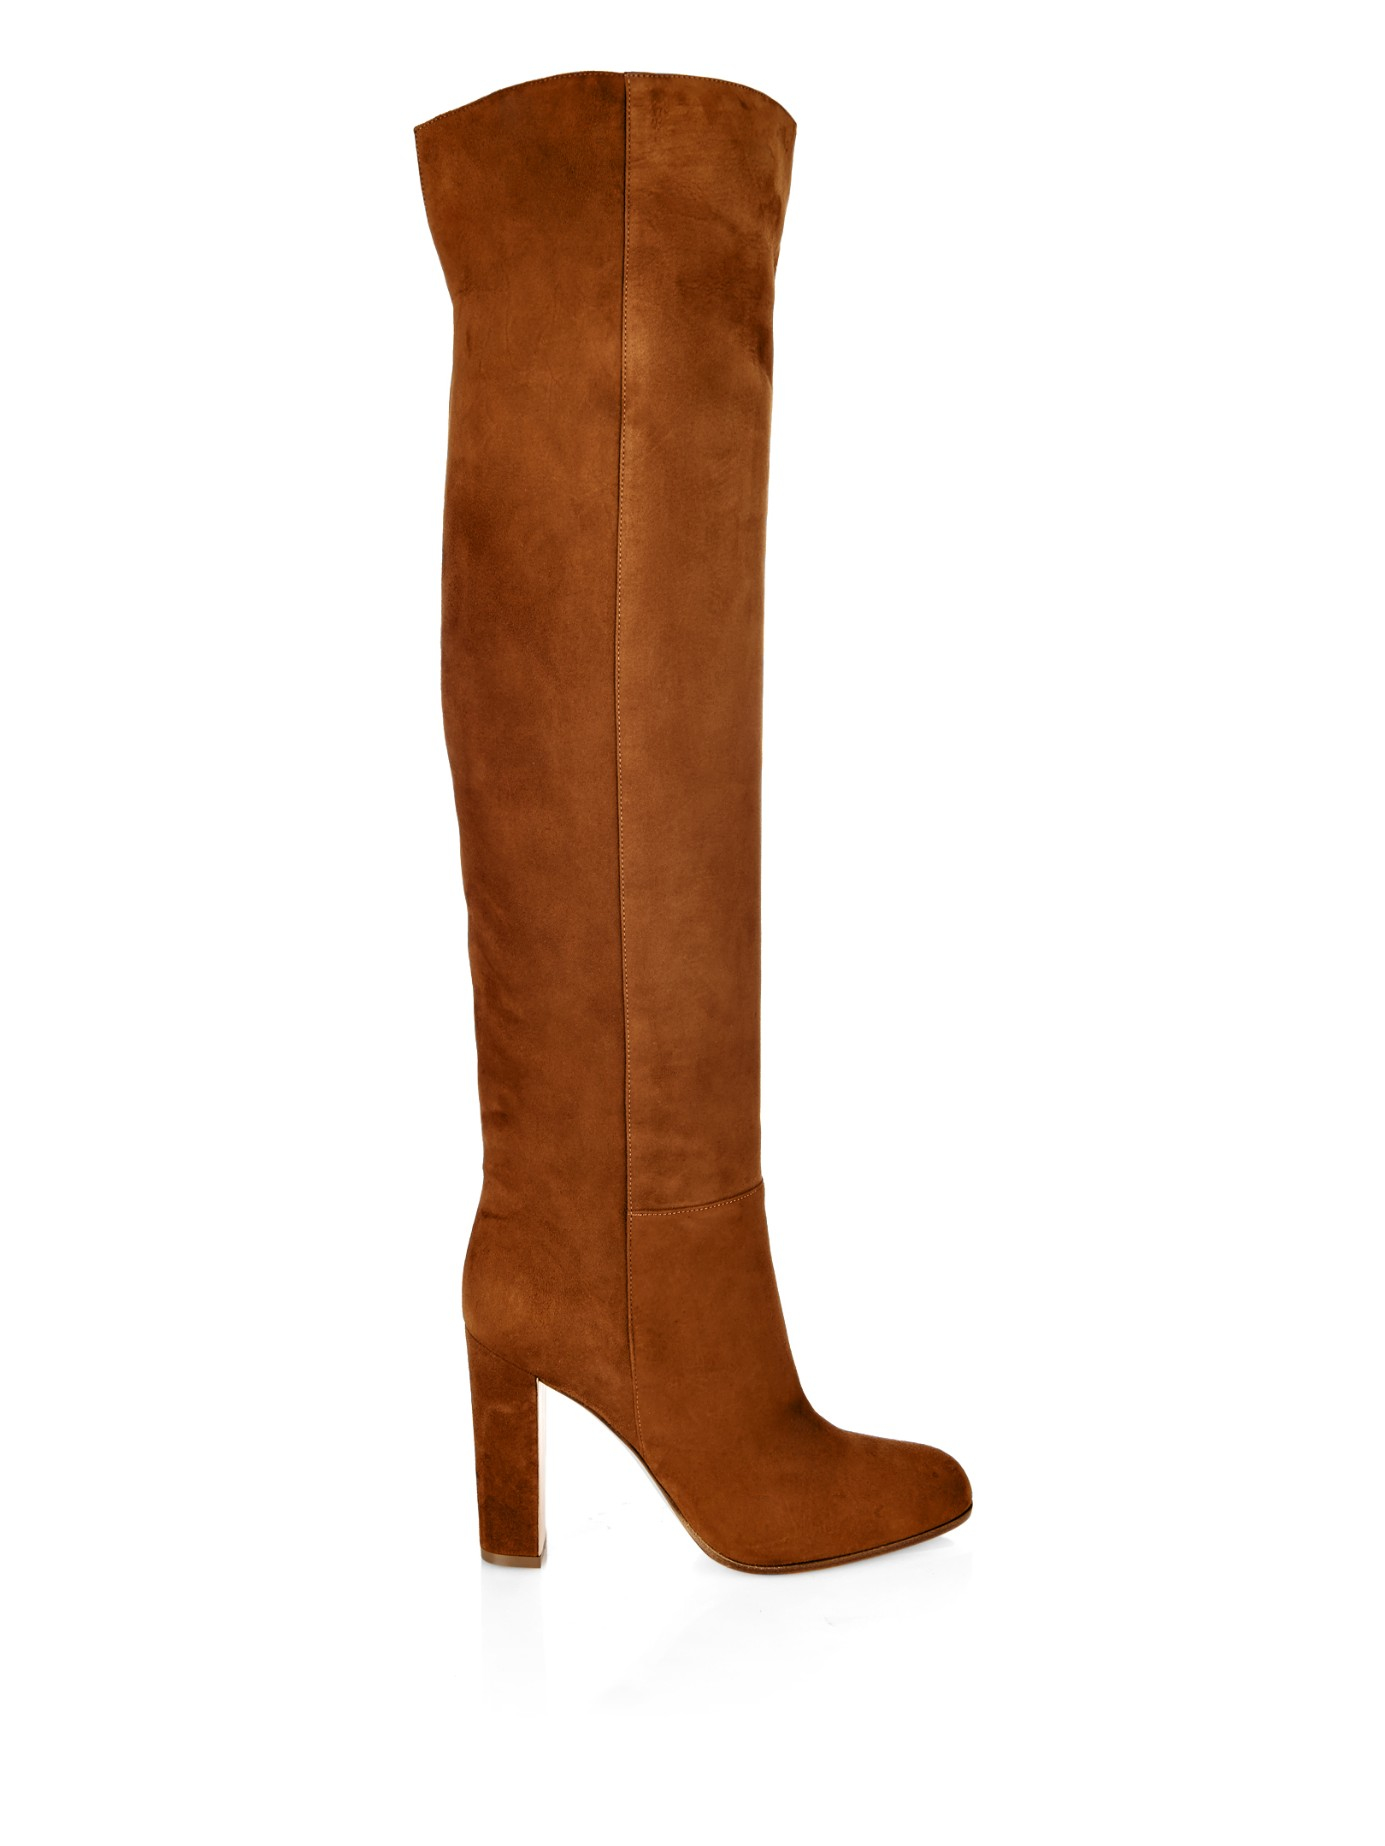 gianvito rossi suede knee high boots in brown lyst. Black Bedroom Furniture Sets. Home Design Ideas